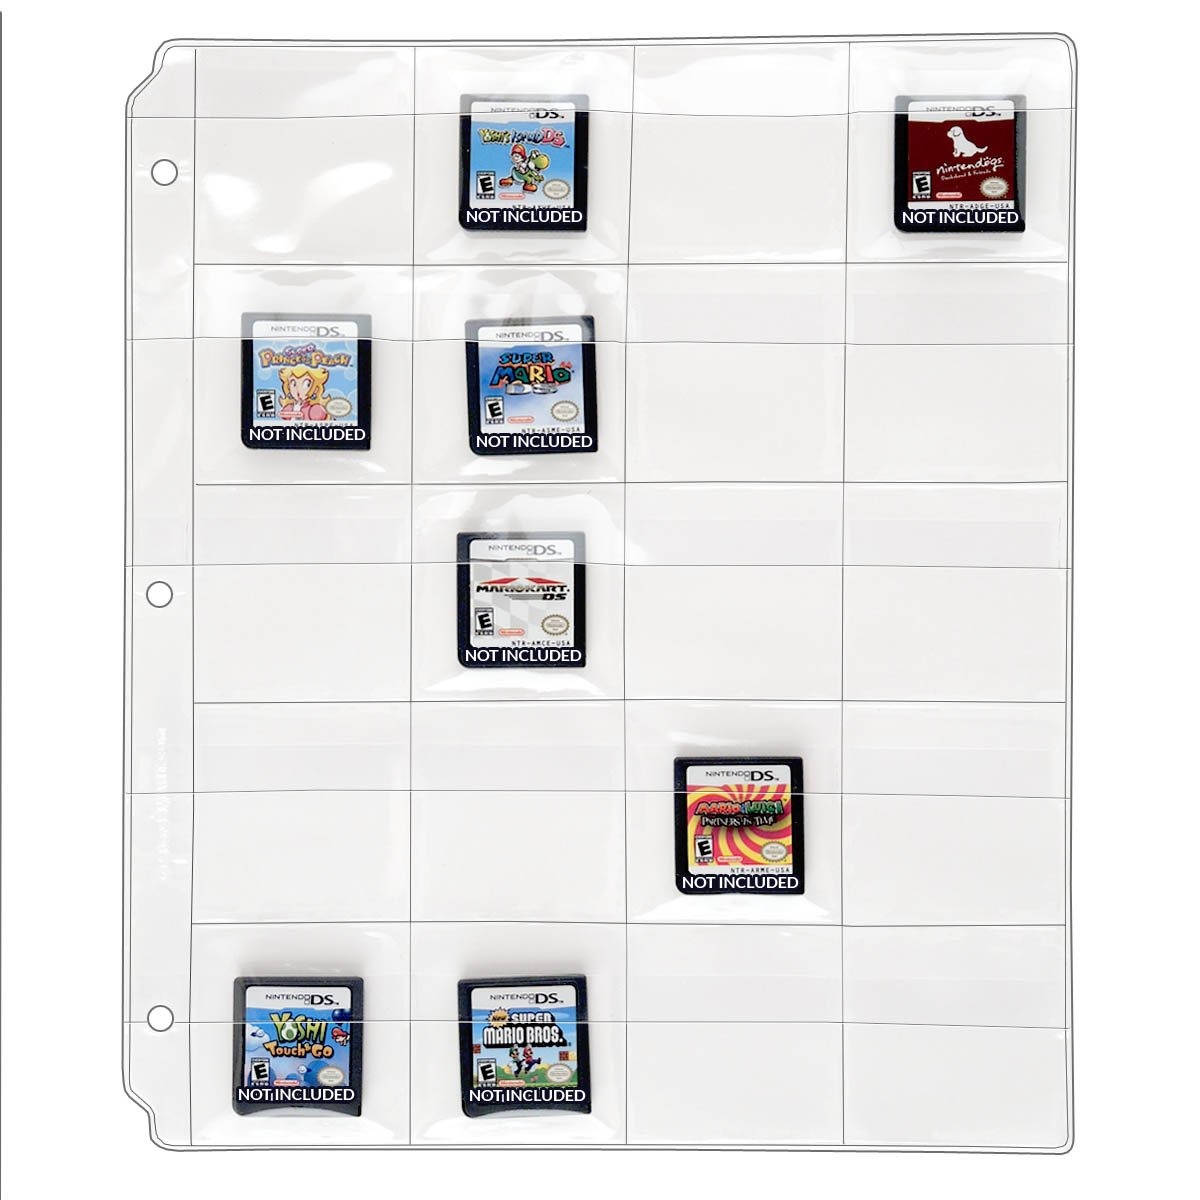 StoreSMART - 20 Pocket 3-Ring Binder Pages with Flaps - for Video Game Cards/Cartridges - 10-Pack - VH1173F-GAME-10